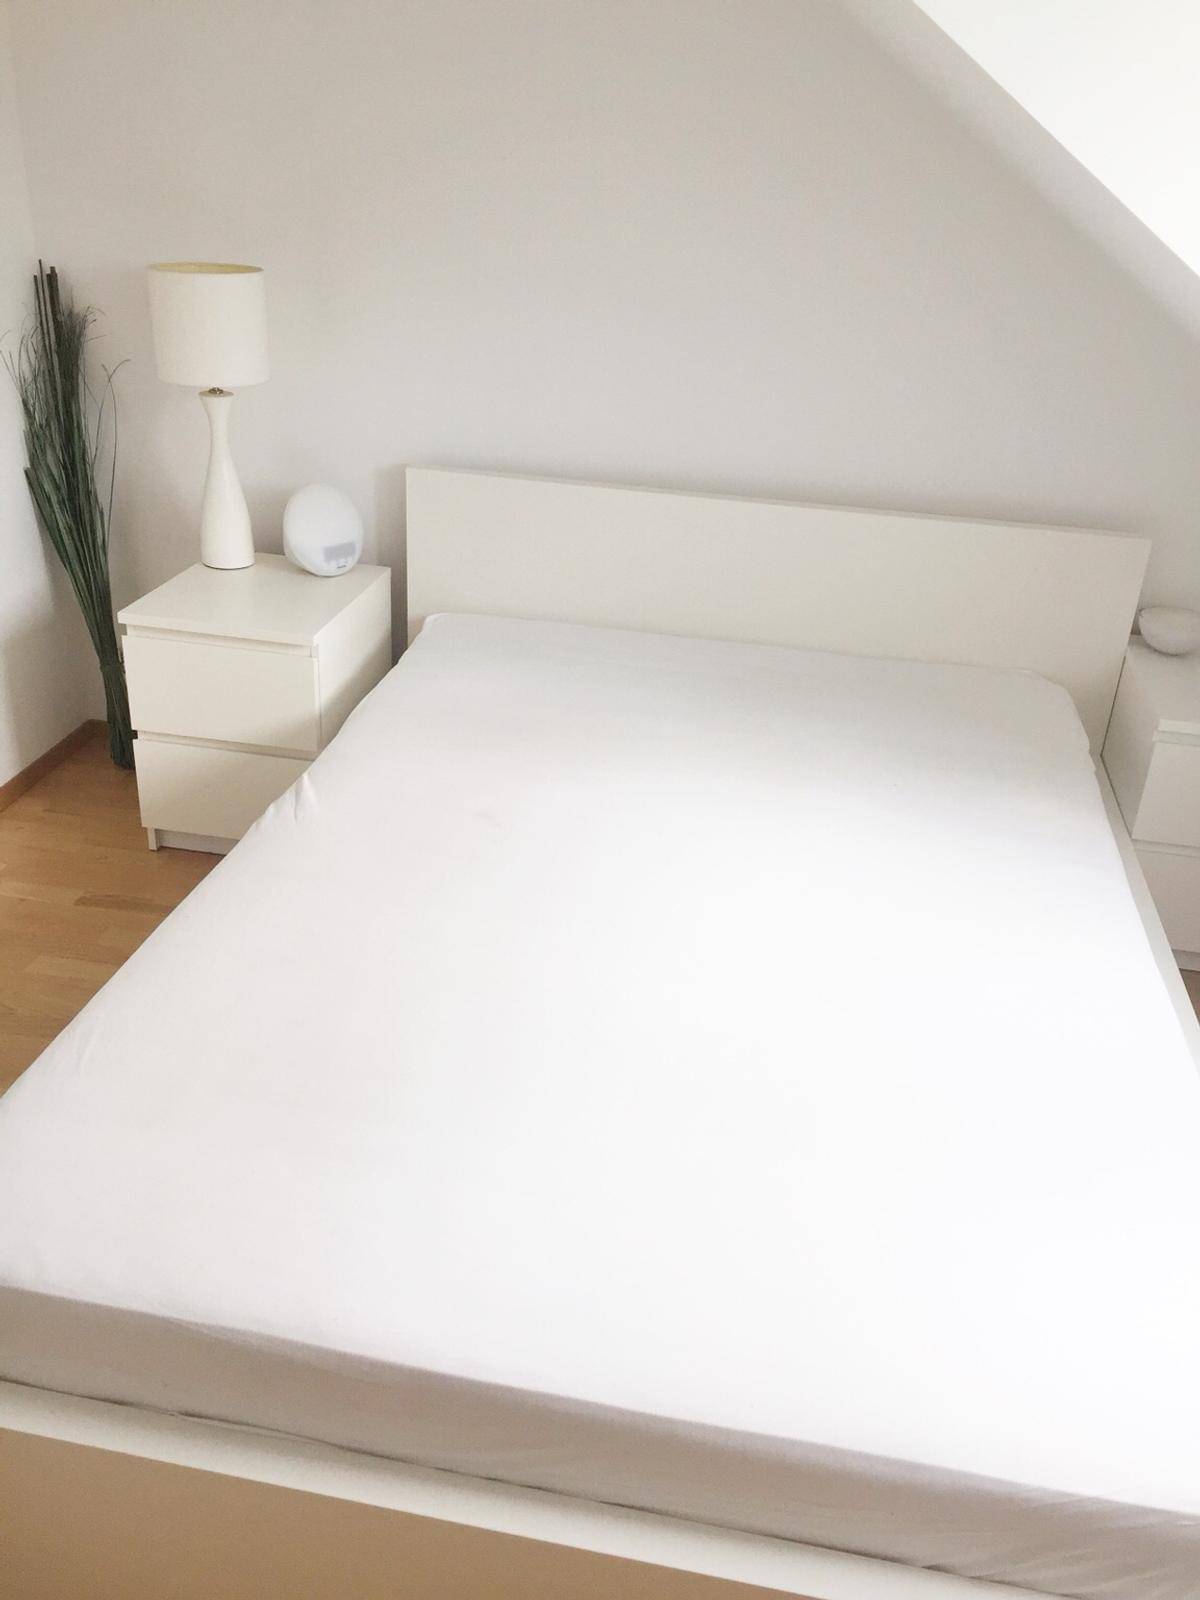 Ikea Malm Bettgestell Weiss Federlattenrost In 80539 Munchen For 50 00 For Sale Shpock